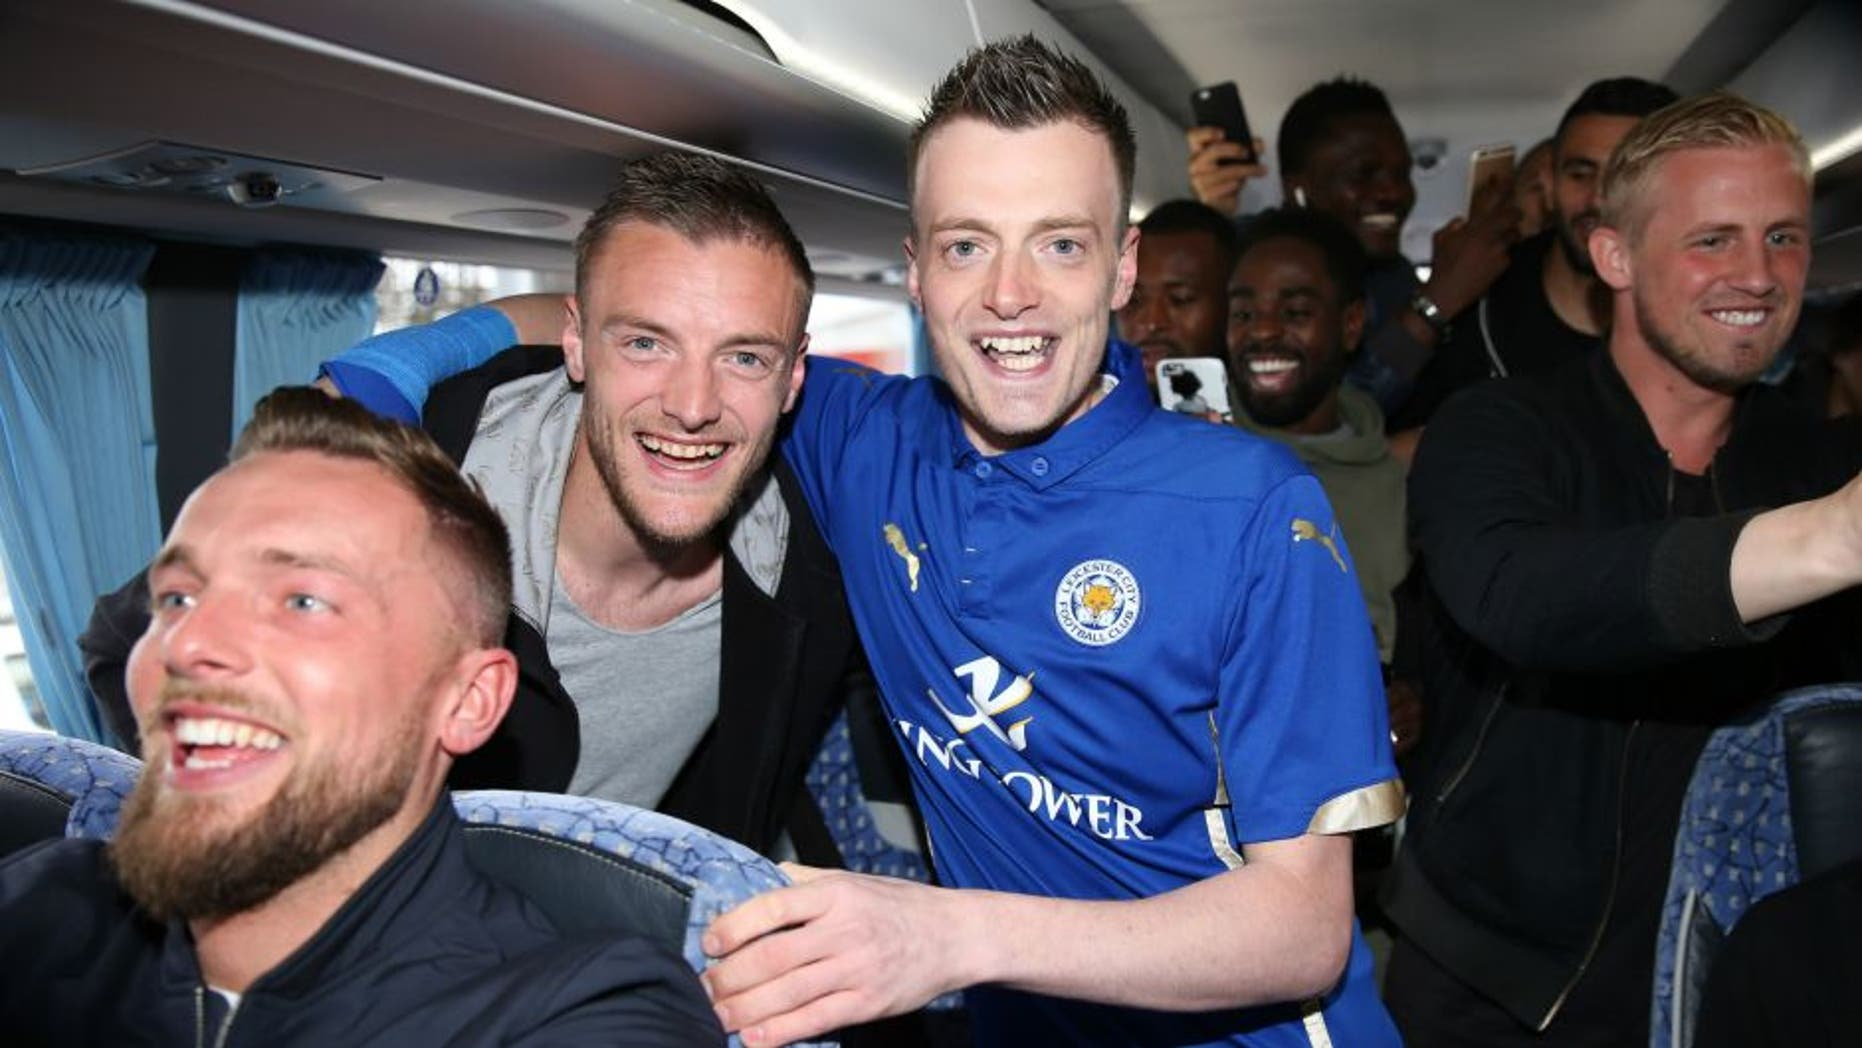 LEICESTER, ENGLAND - MAY 03: Jamie Vardy lookalike Lee Chapman joins Jamie Vardy and the Leicester City team on their way to a Premier League title celebration dinner on May 3, 2016 in Leicester, England. (Photo by Plumb Images/Leicester City FC via Getty Images)